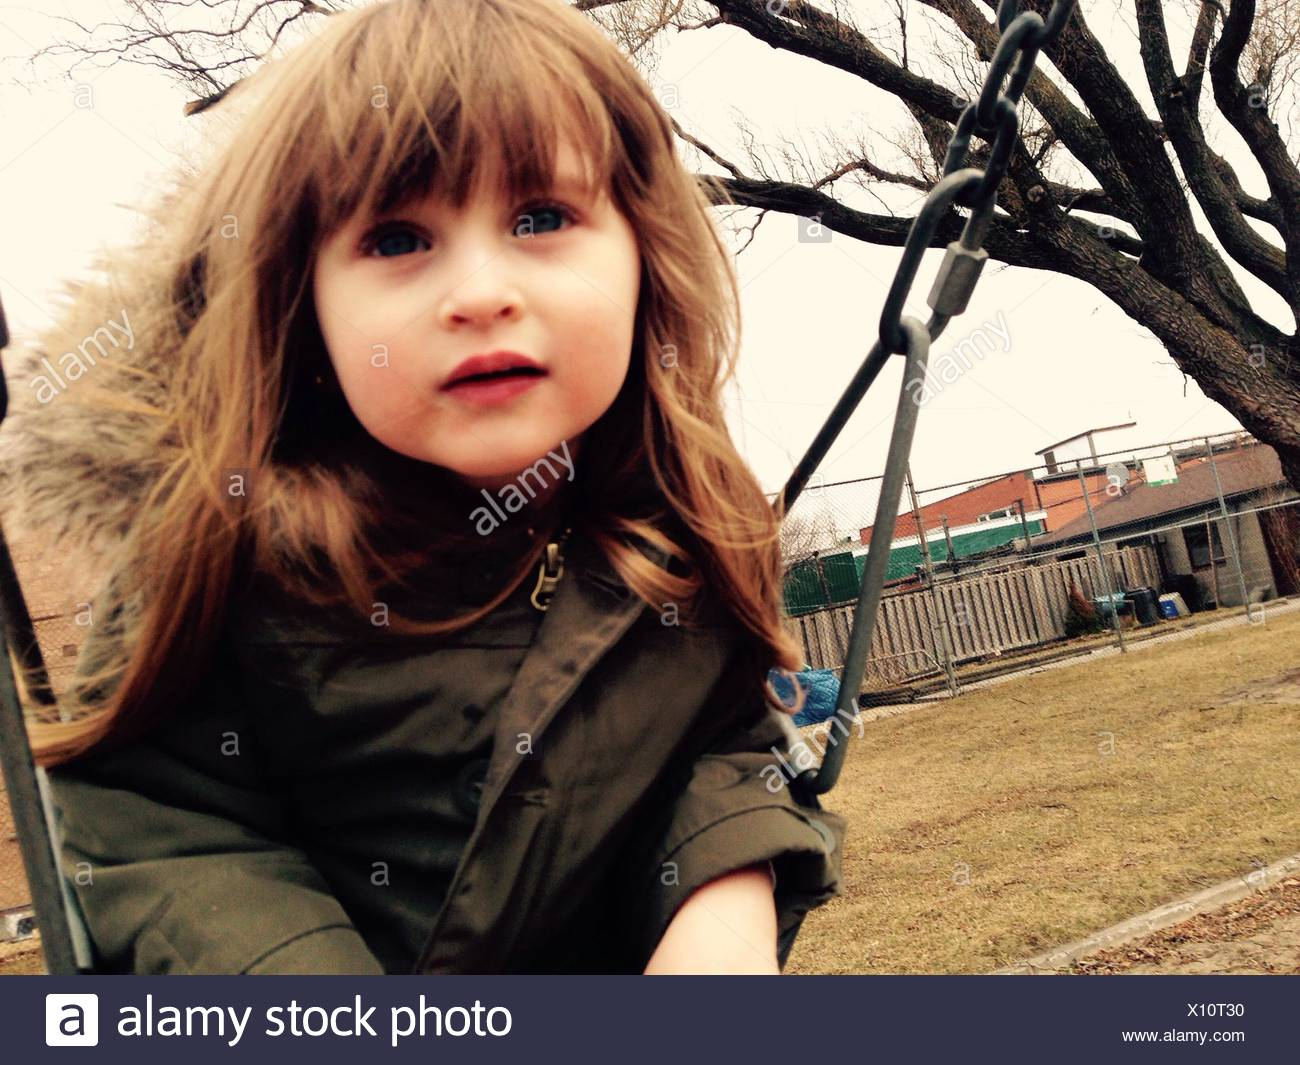 Close-Up Of Girl Sitting On Chain Swing Ride - Stock Image